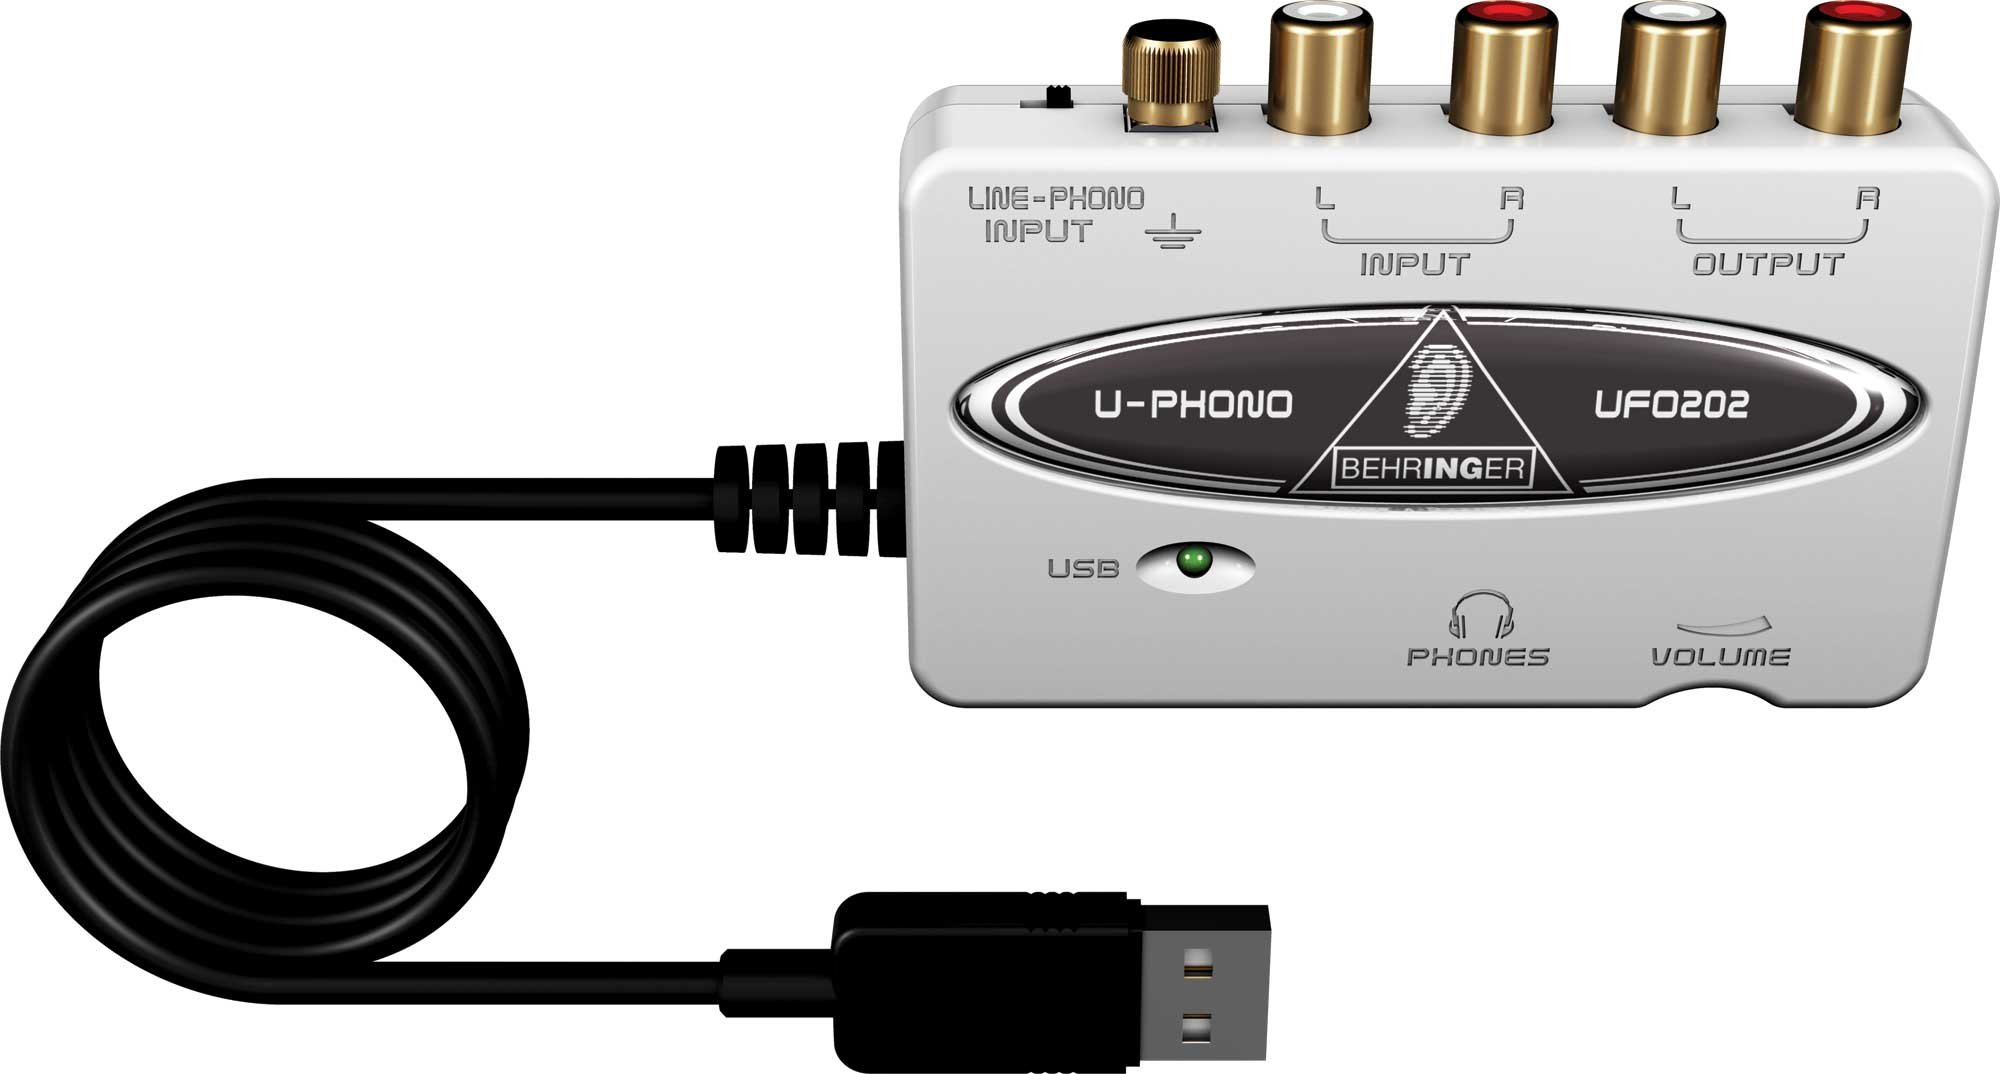 behringer ufo202 u phono usb audio interface with phono preamp full compass systems. Black Bedroom Furniture Sets. Home Design Ideas